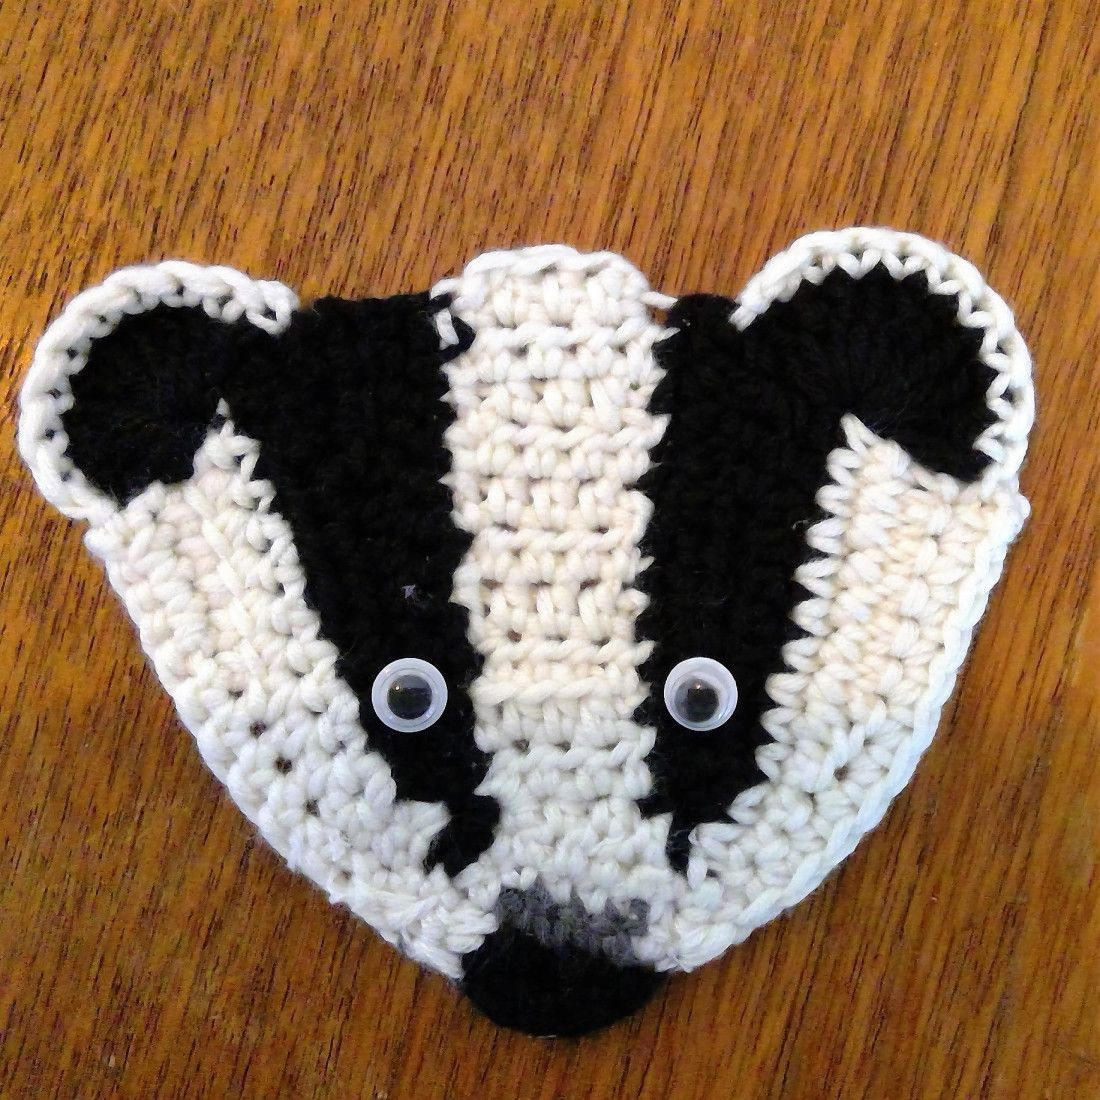 Ravelry: Badger Your MP Crochet Badger Pattern pattern by Ruth Norbury   1100x1100